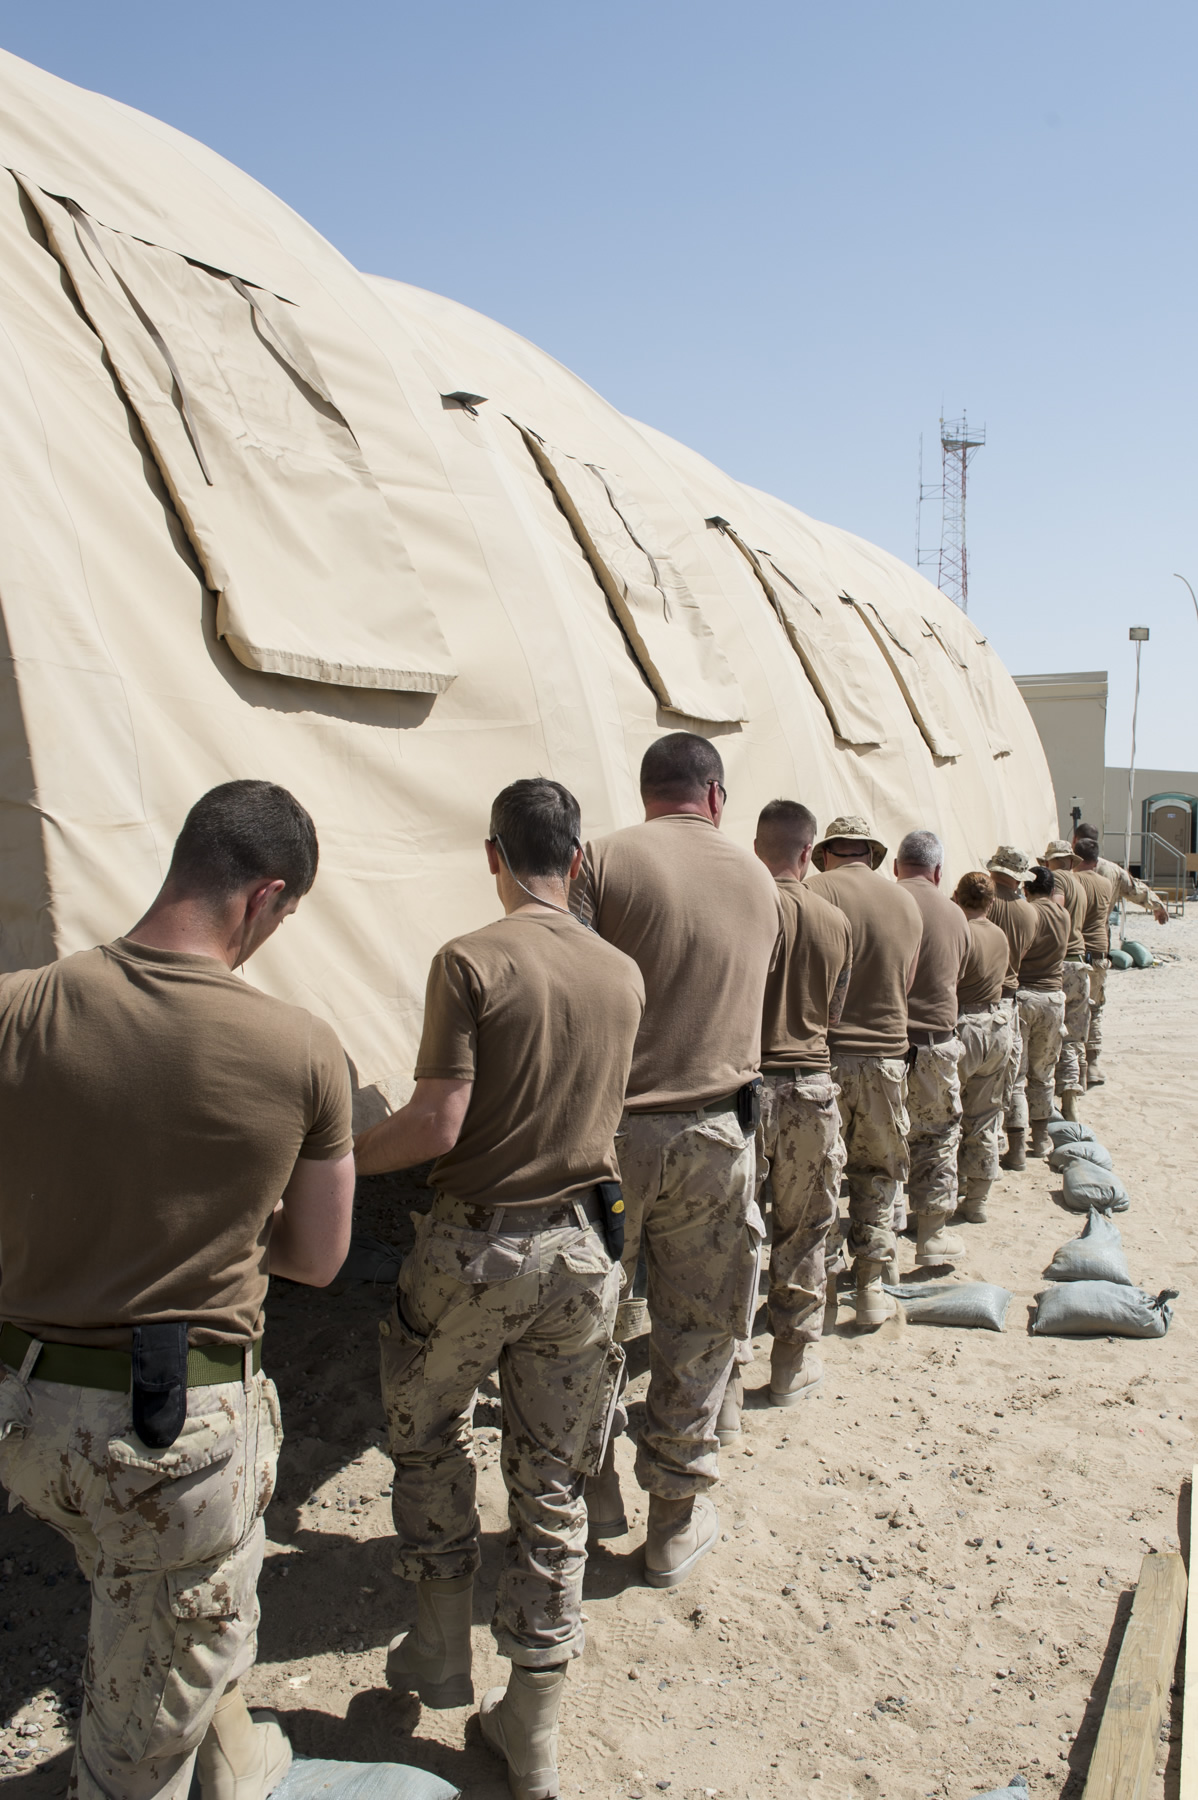 camp patrice vincent kuwait 28 june 2015 canadian armed forces members move a